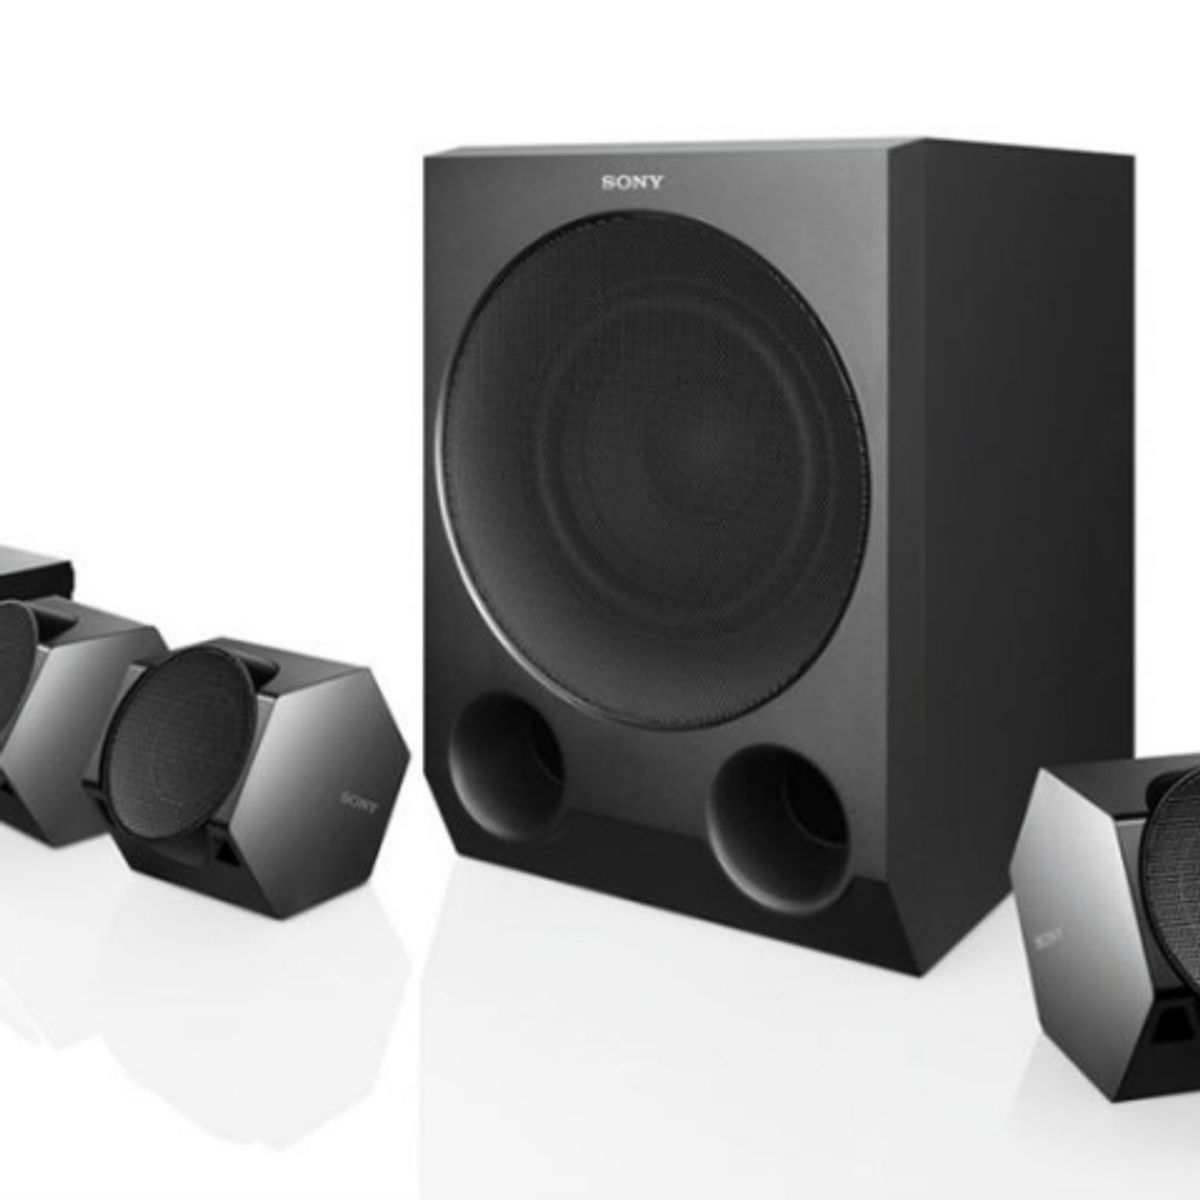 Sony Ht Iv300 5 1 Home Theatre Review